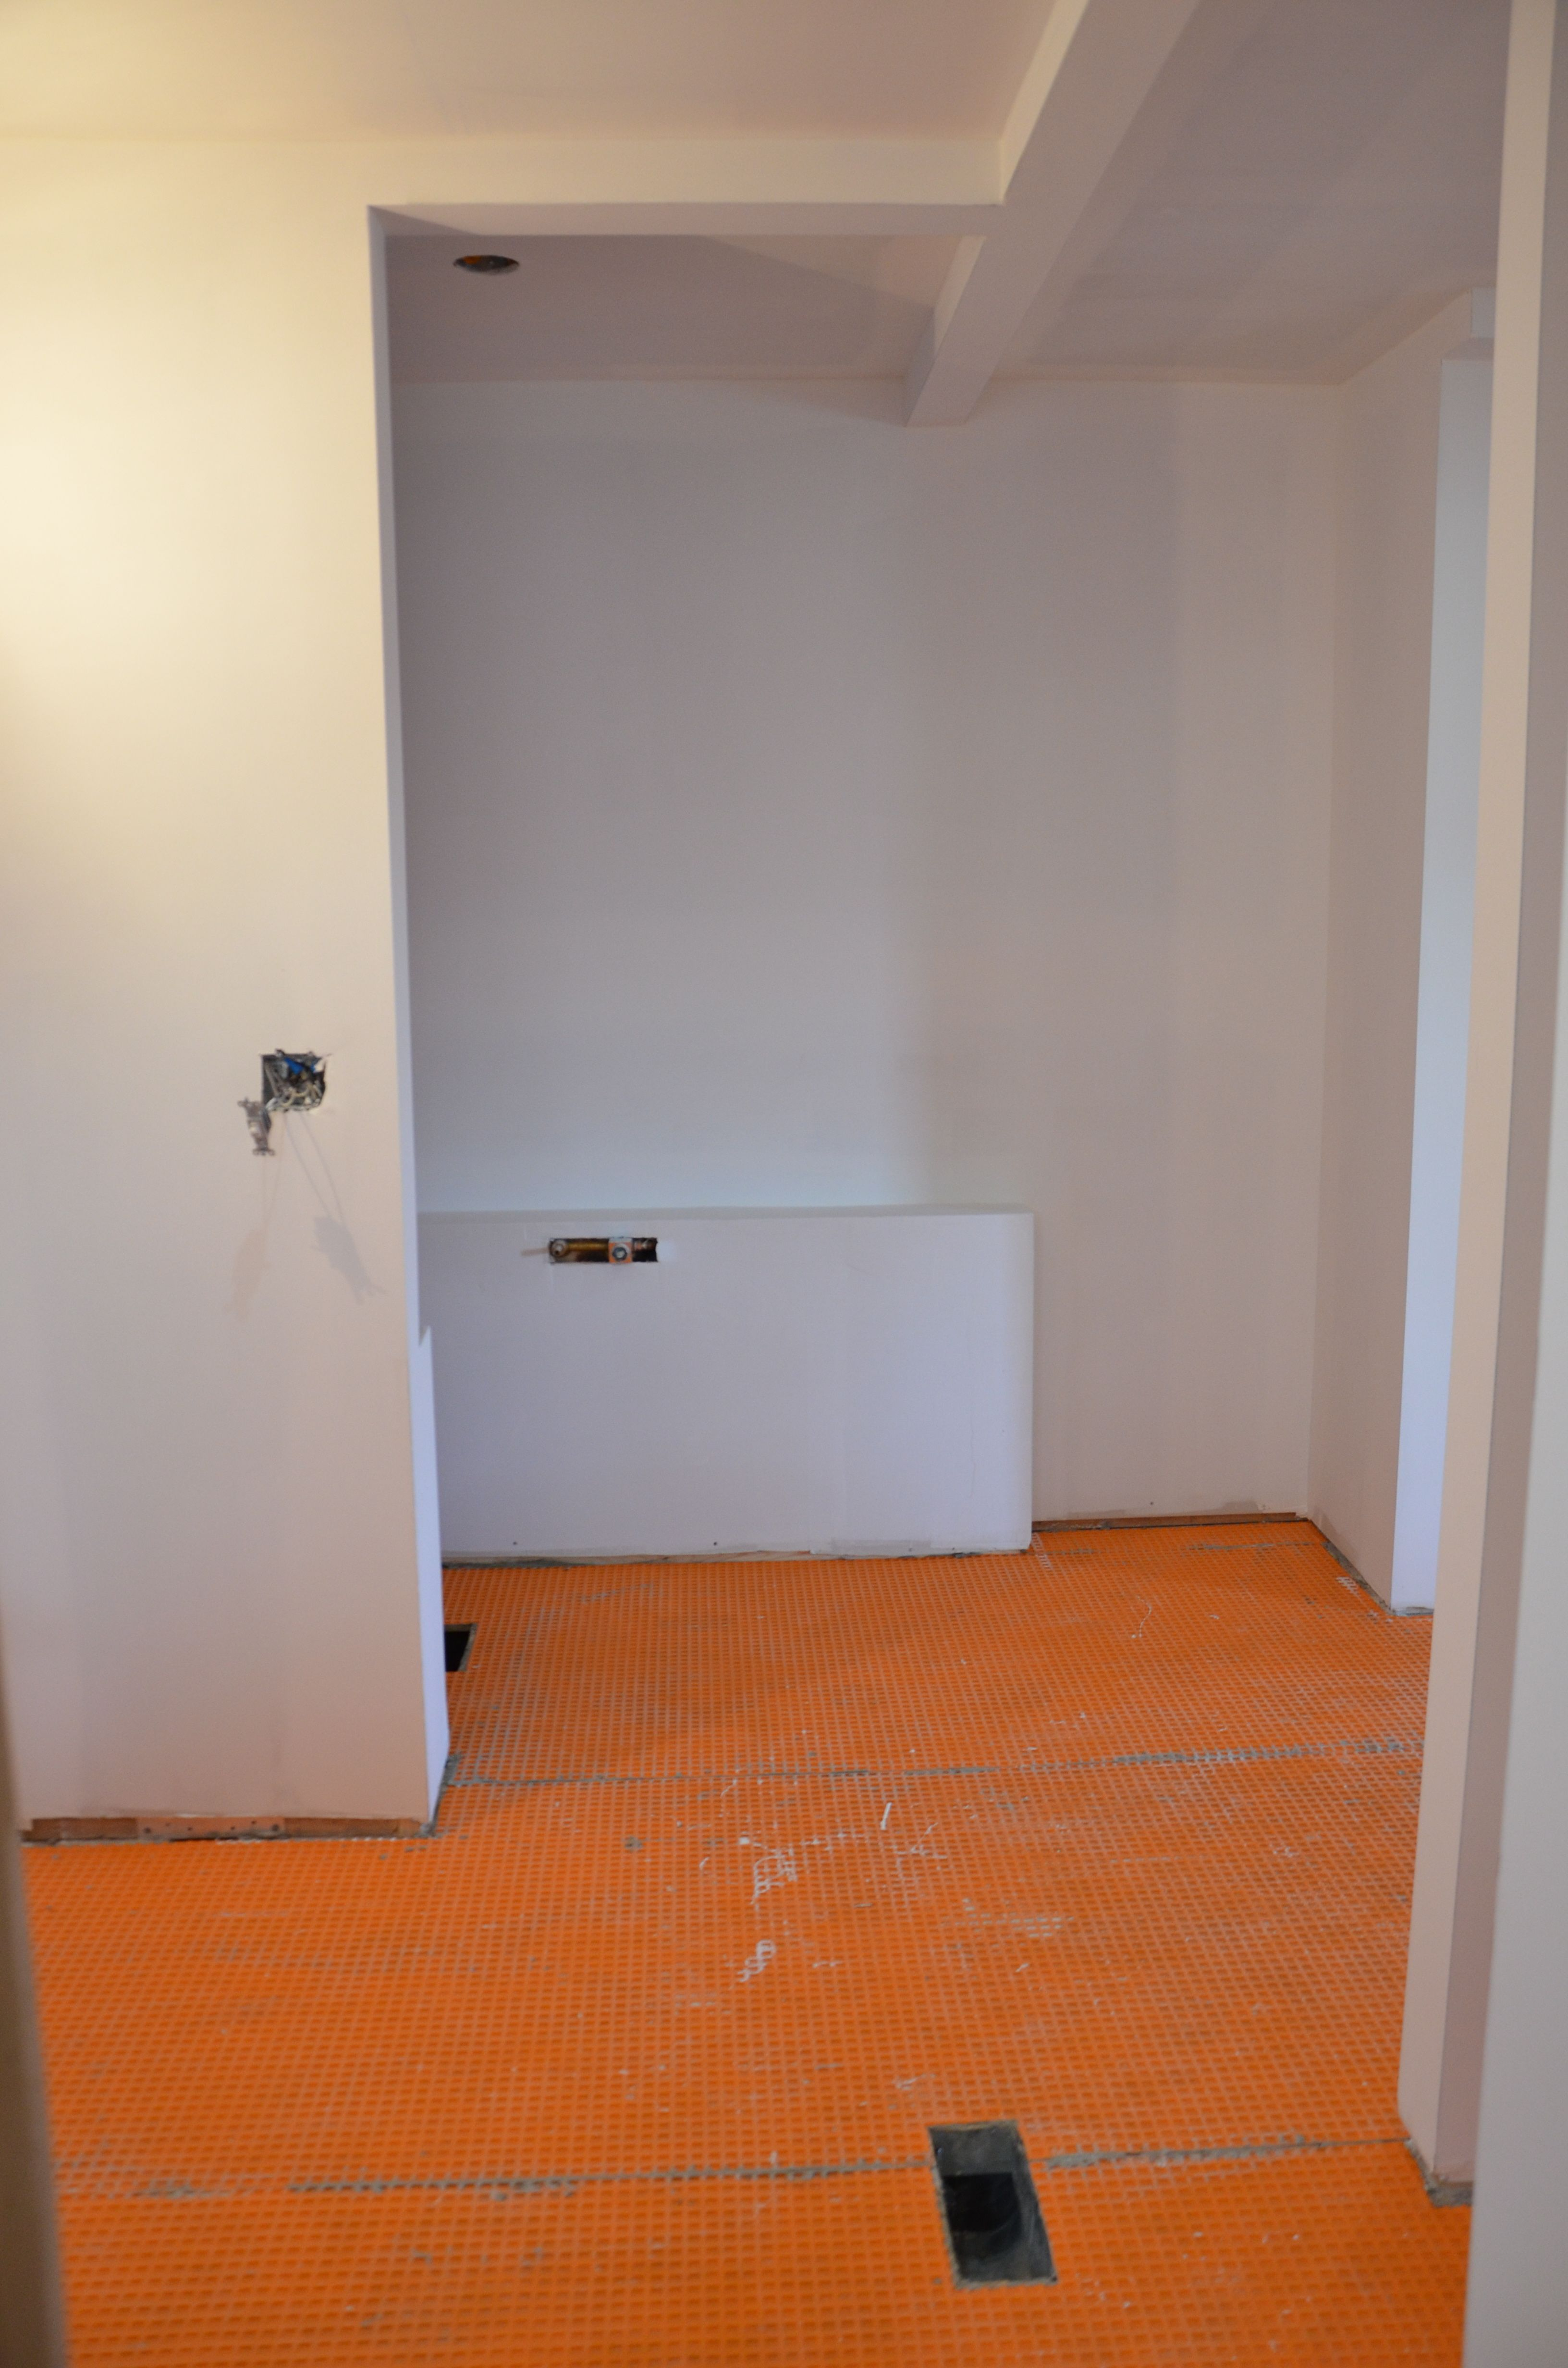 Tub area with Schluter floor